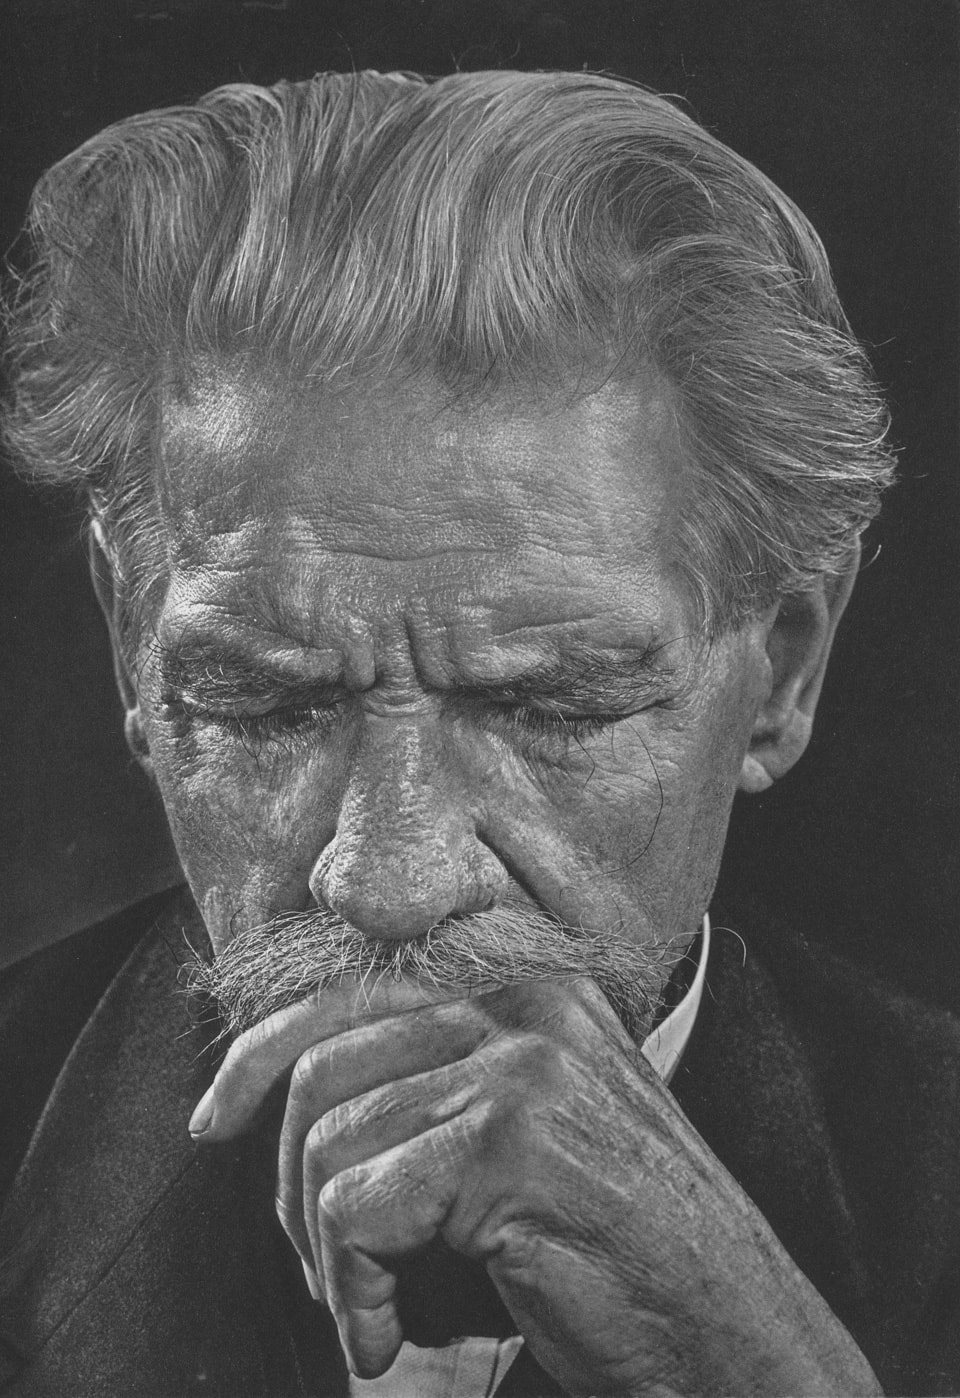 Albert Schweitzer by Yousuf Karsh, 1954